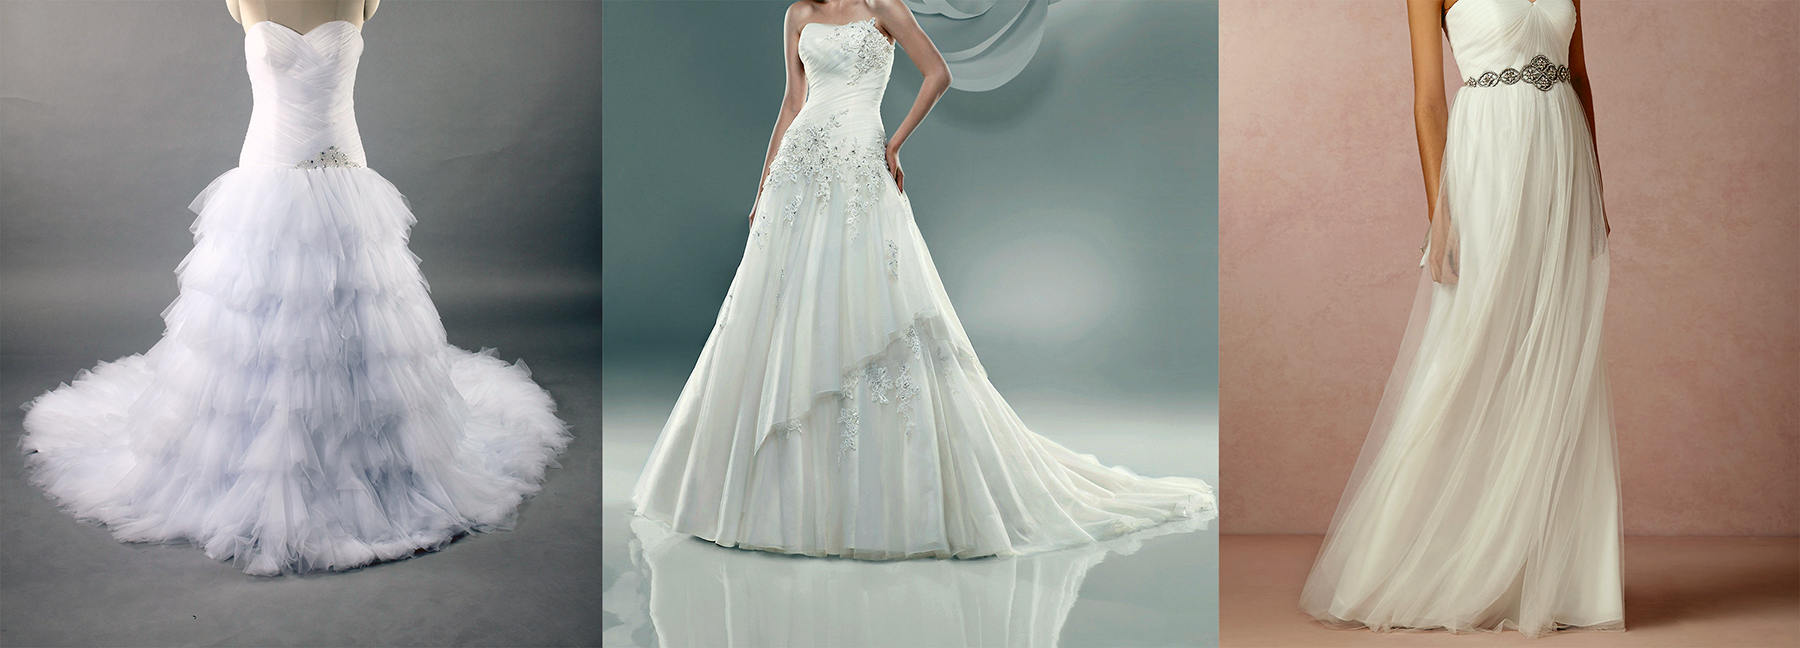 Wedding dresses for rent london ontario high cut wedding for Wedding dress rental san diego